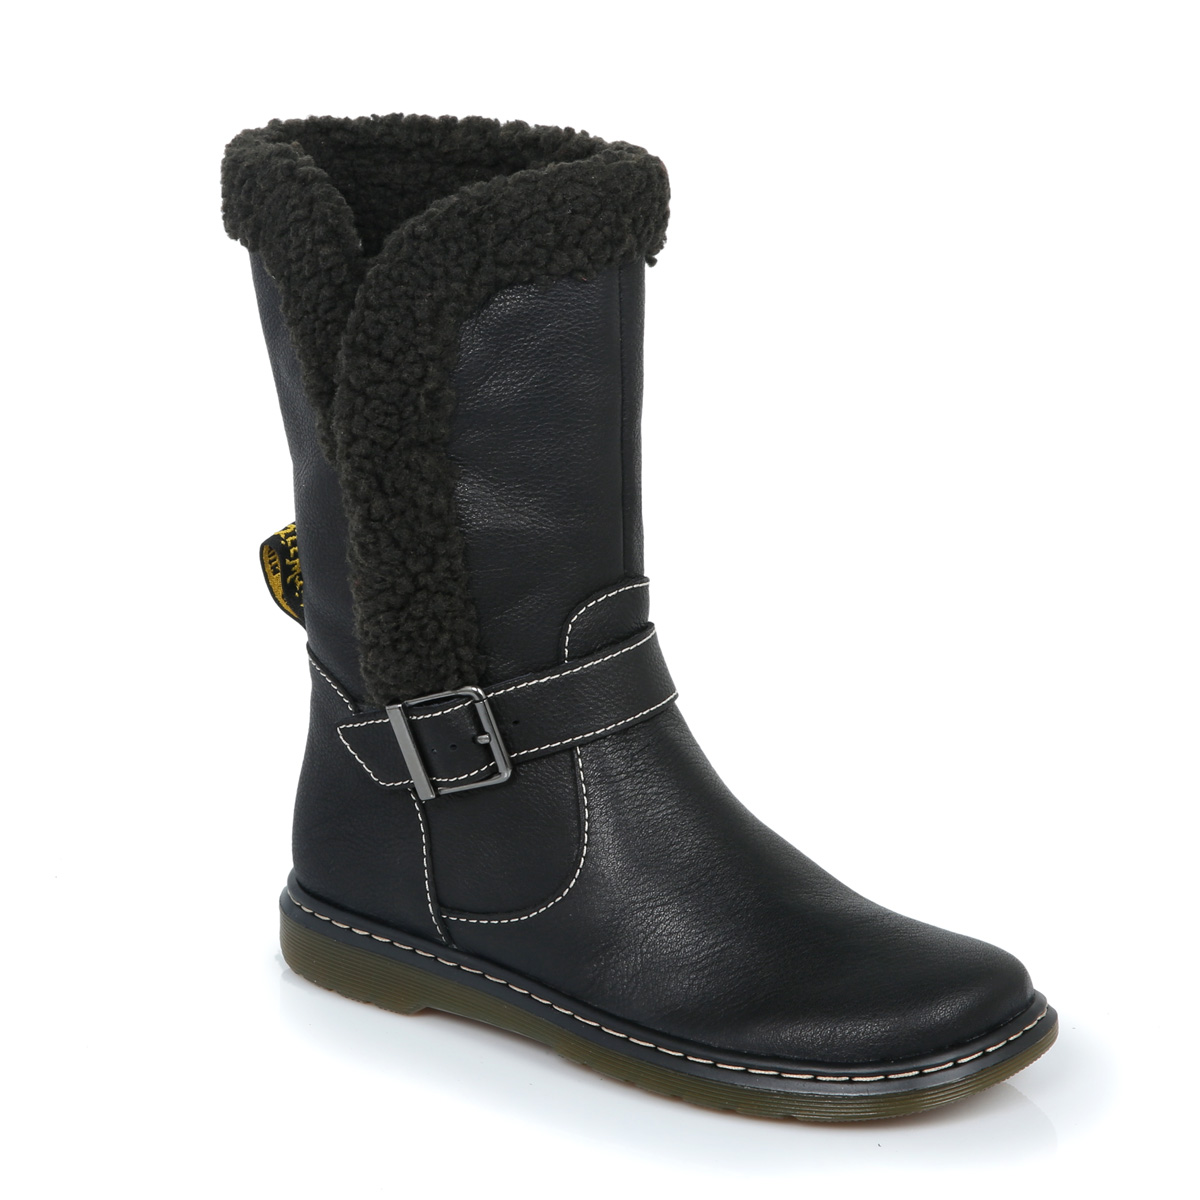 dr martens black brielle leather boots womens sizes 3 9 ebay